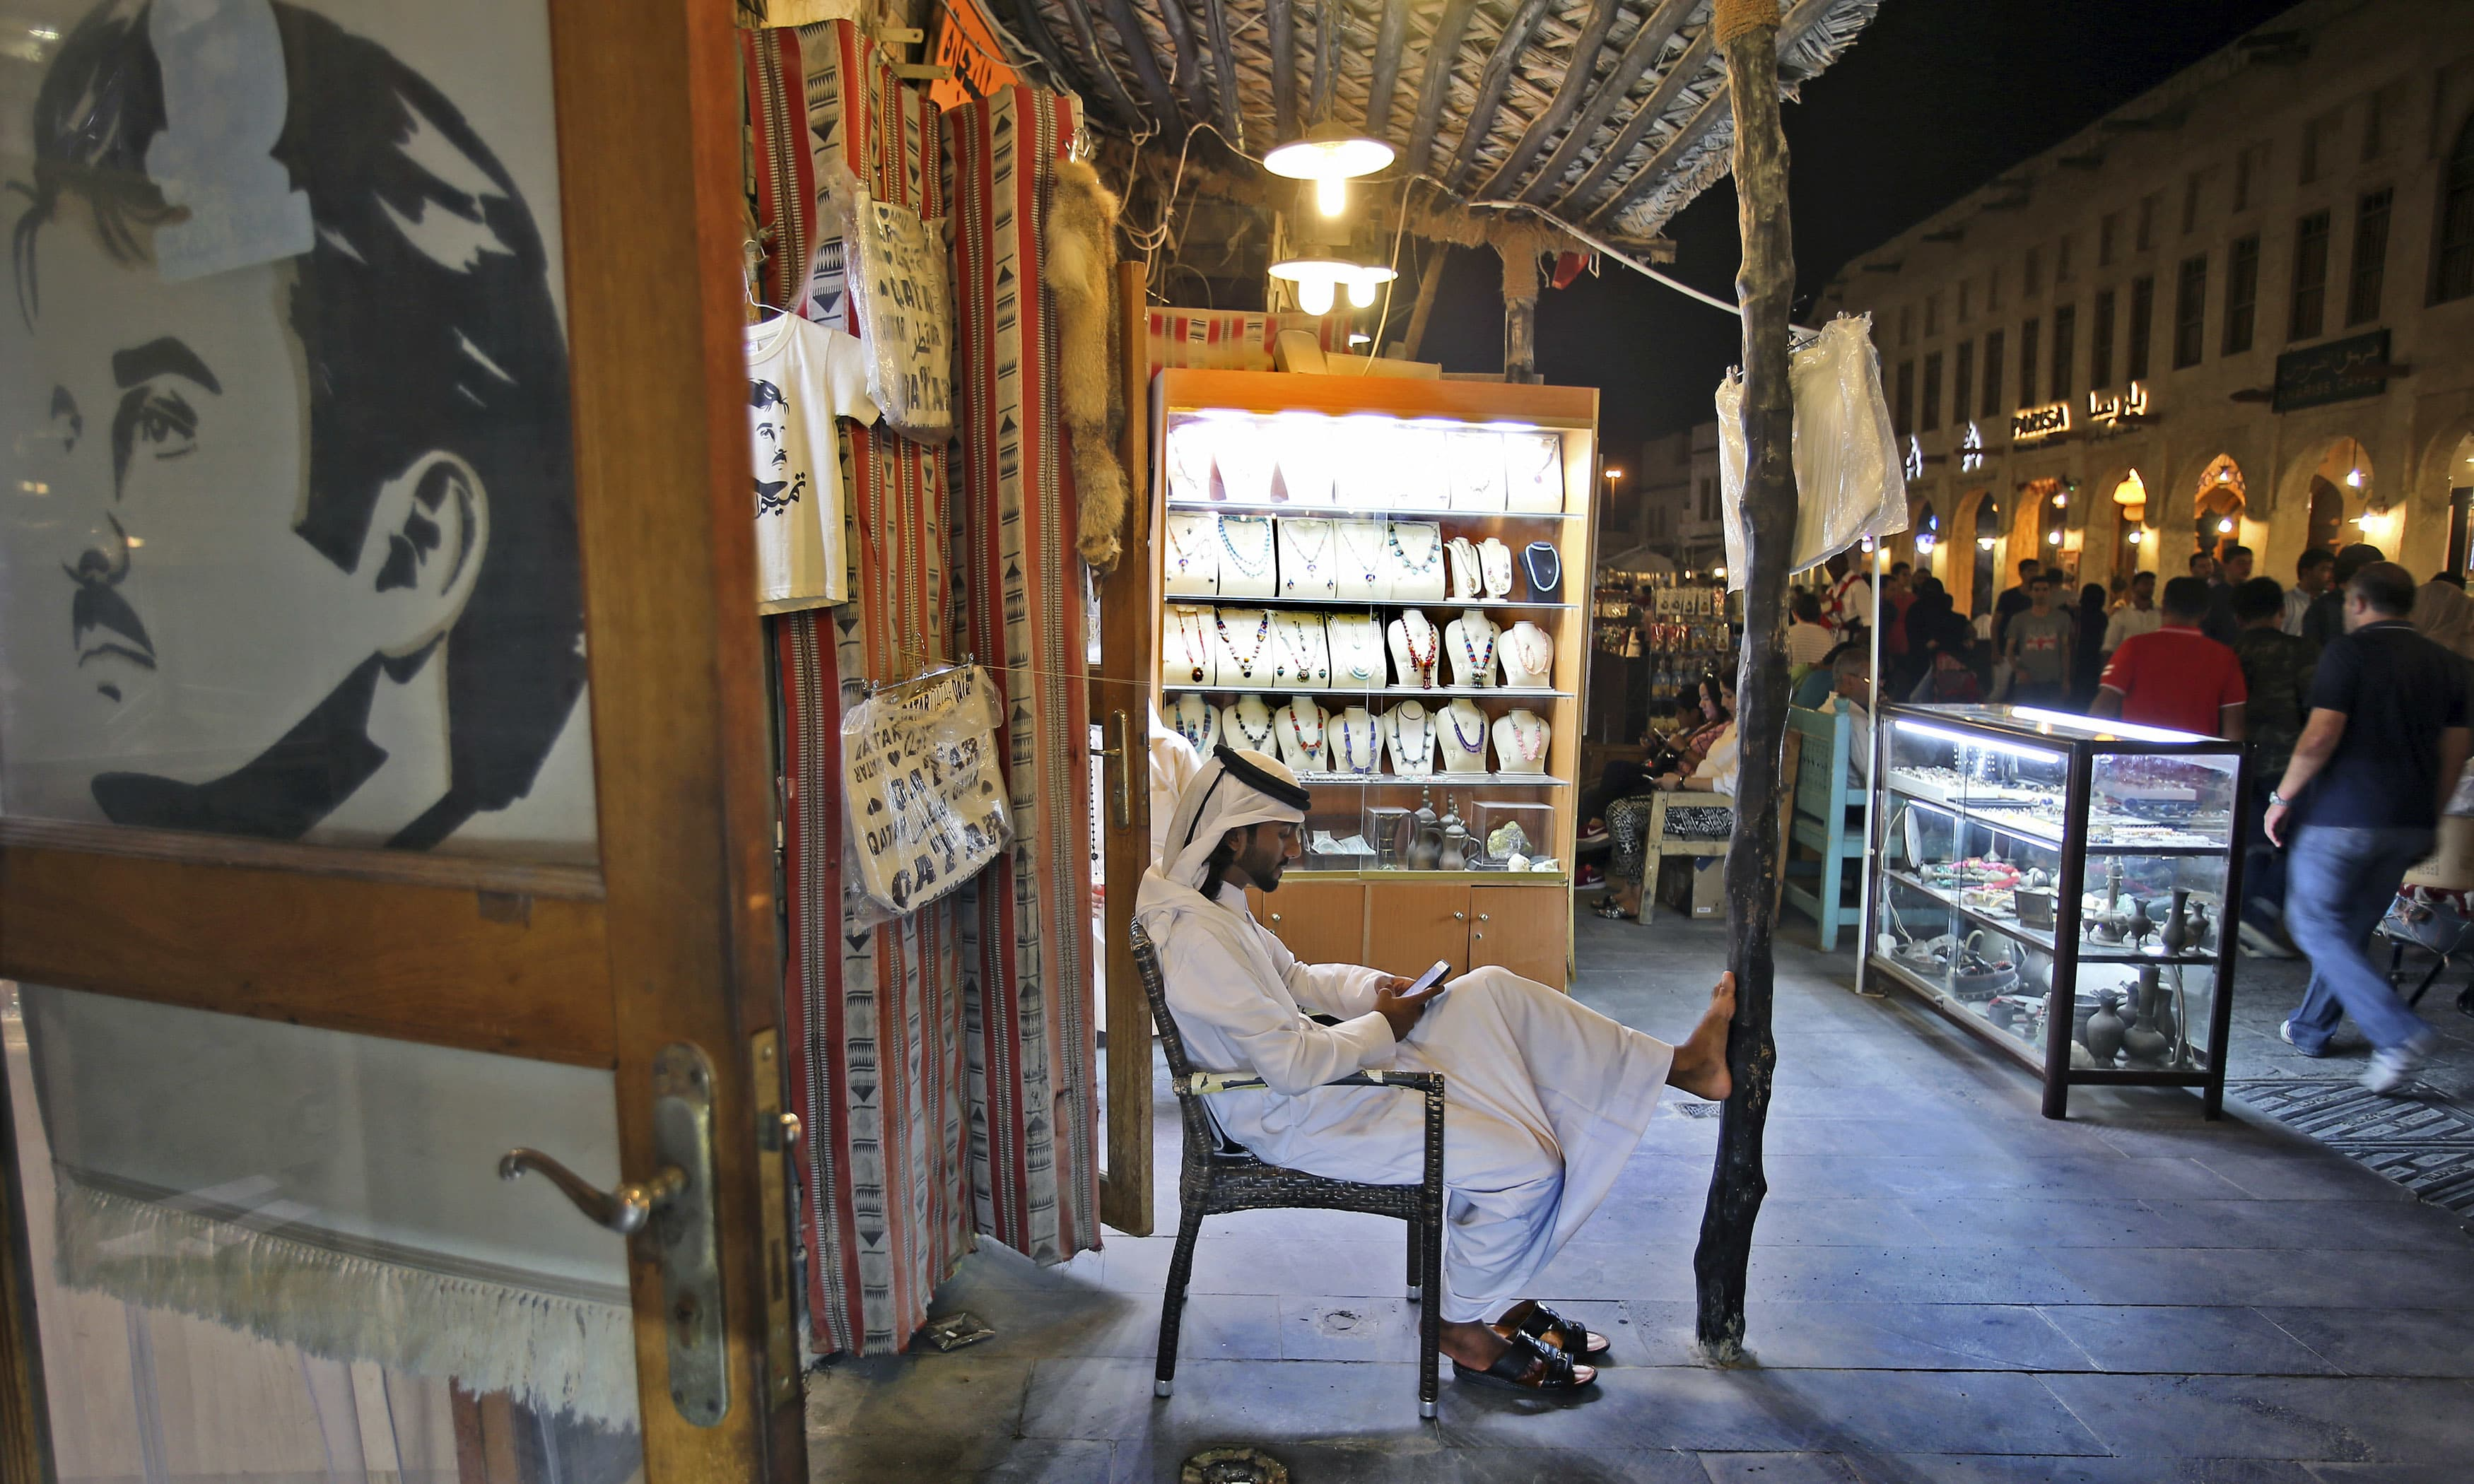 A poster of the Emir of Qatar Sheikh Tamim bin Hamad Al Thani is displayed on the door of a jewelry store in the Waqif Souq. —AP